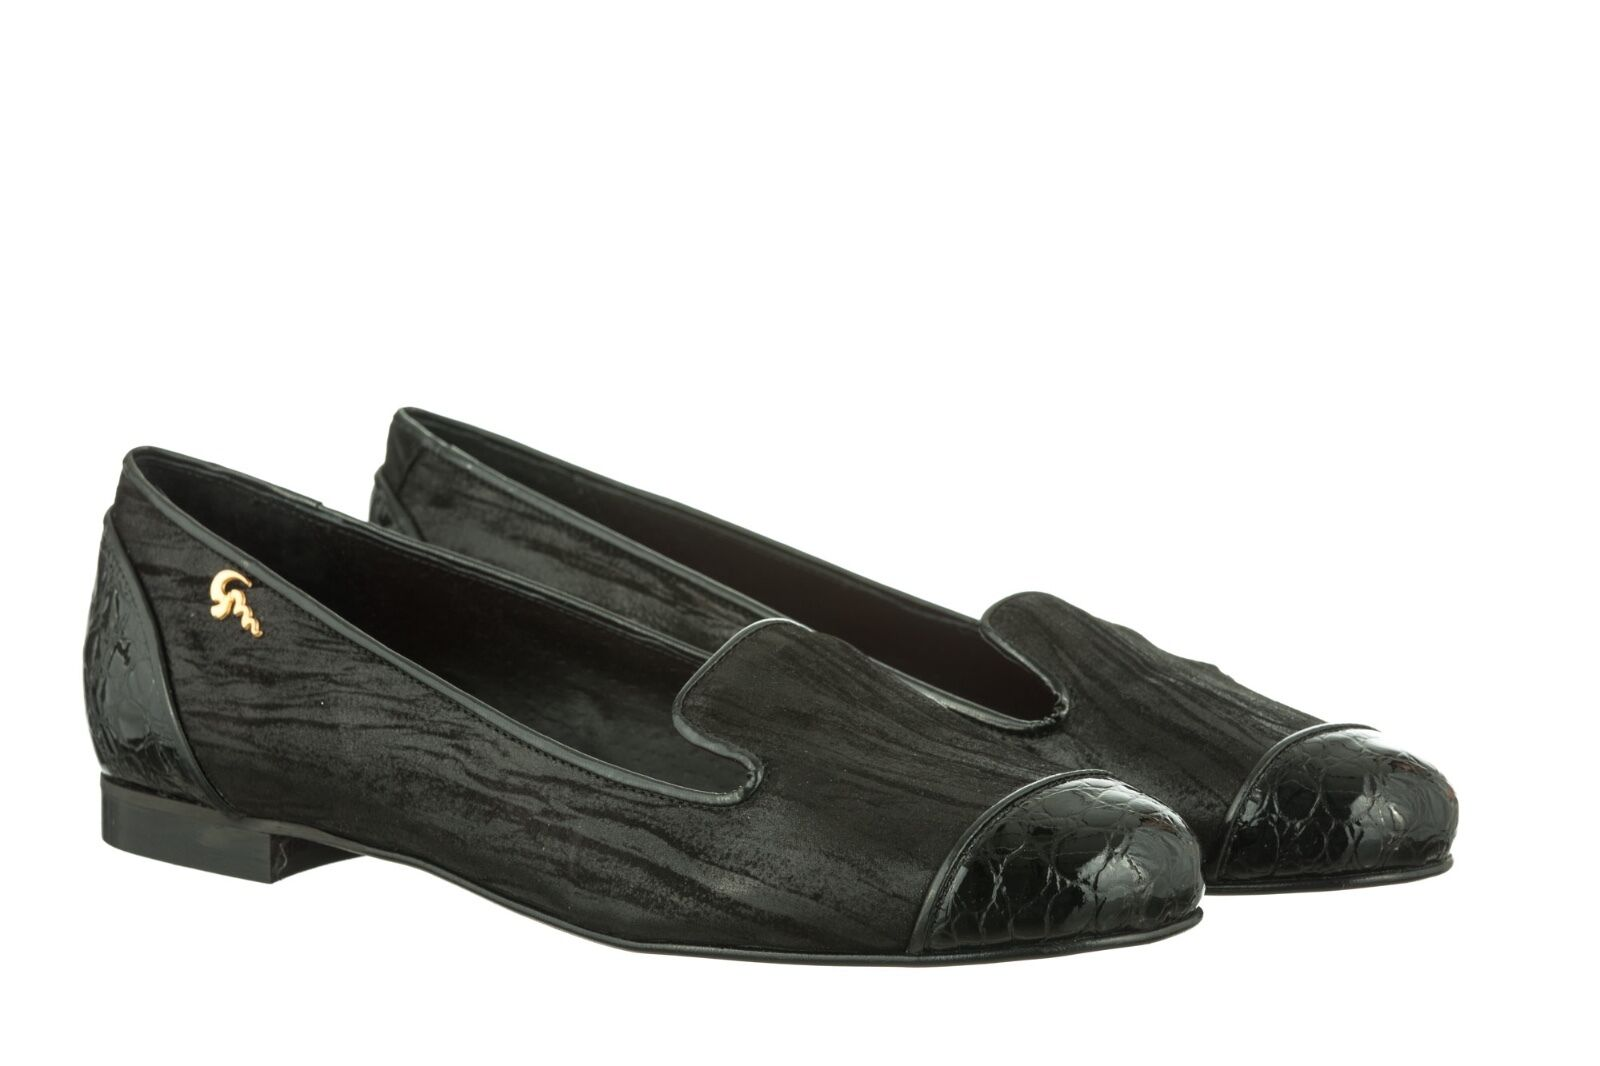 MORI MADE IN ITALY SLIP ON FLATS SCHUHE SHOES BALLERINA LEATHER NERO BLACK 44